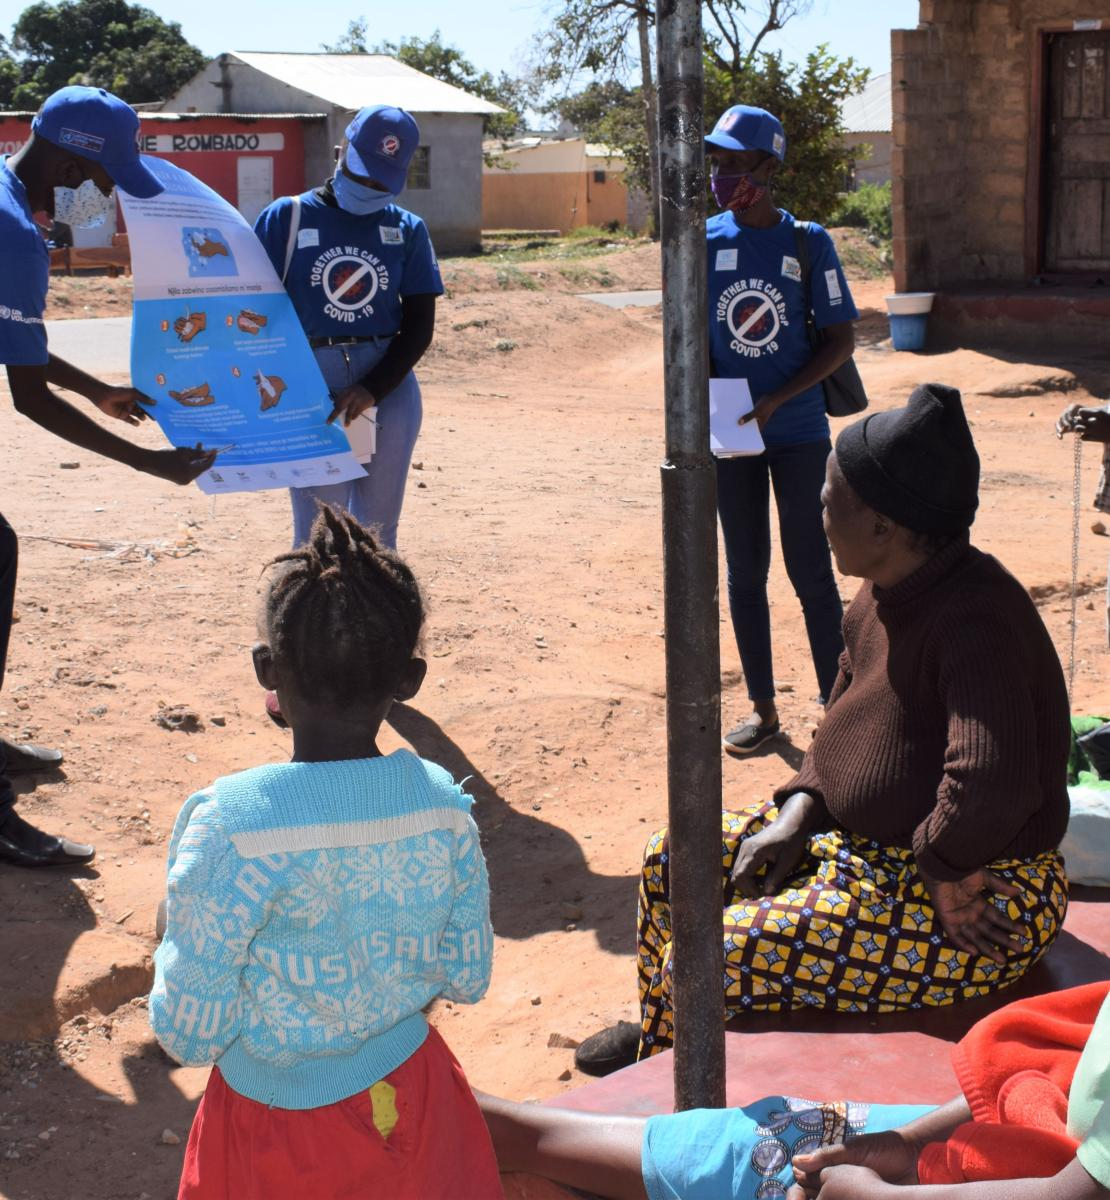 Community volunteers in Lusaka speaks to community members about COVID-19 as part of community sensitization on the virus.